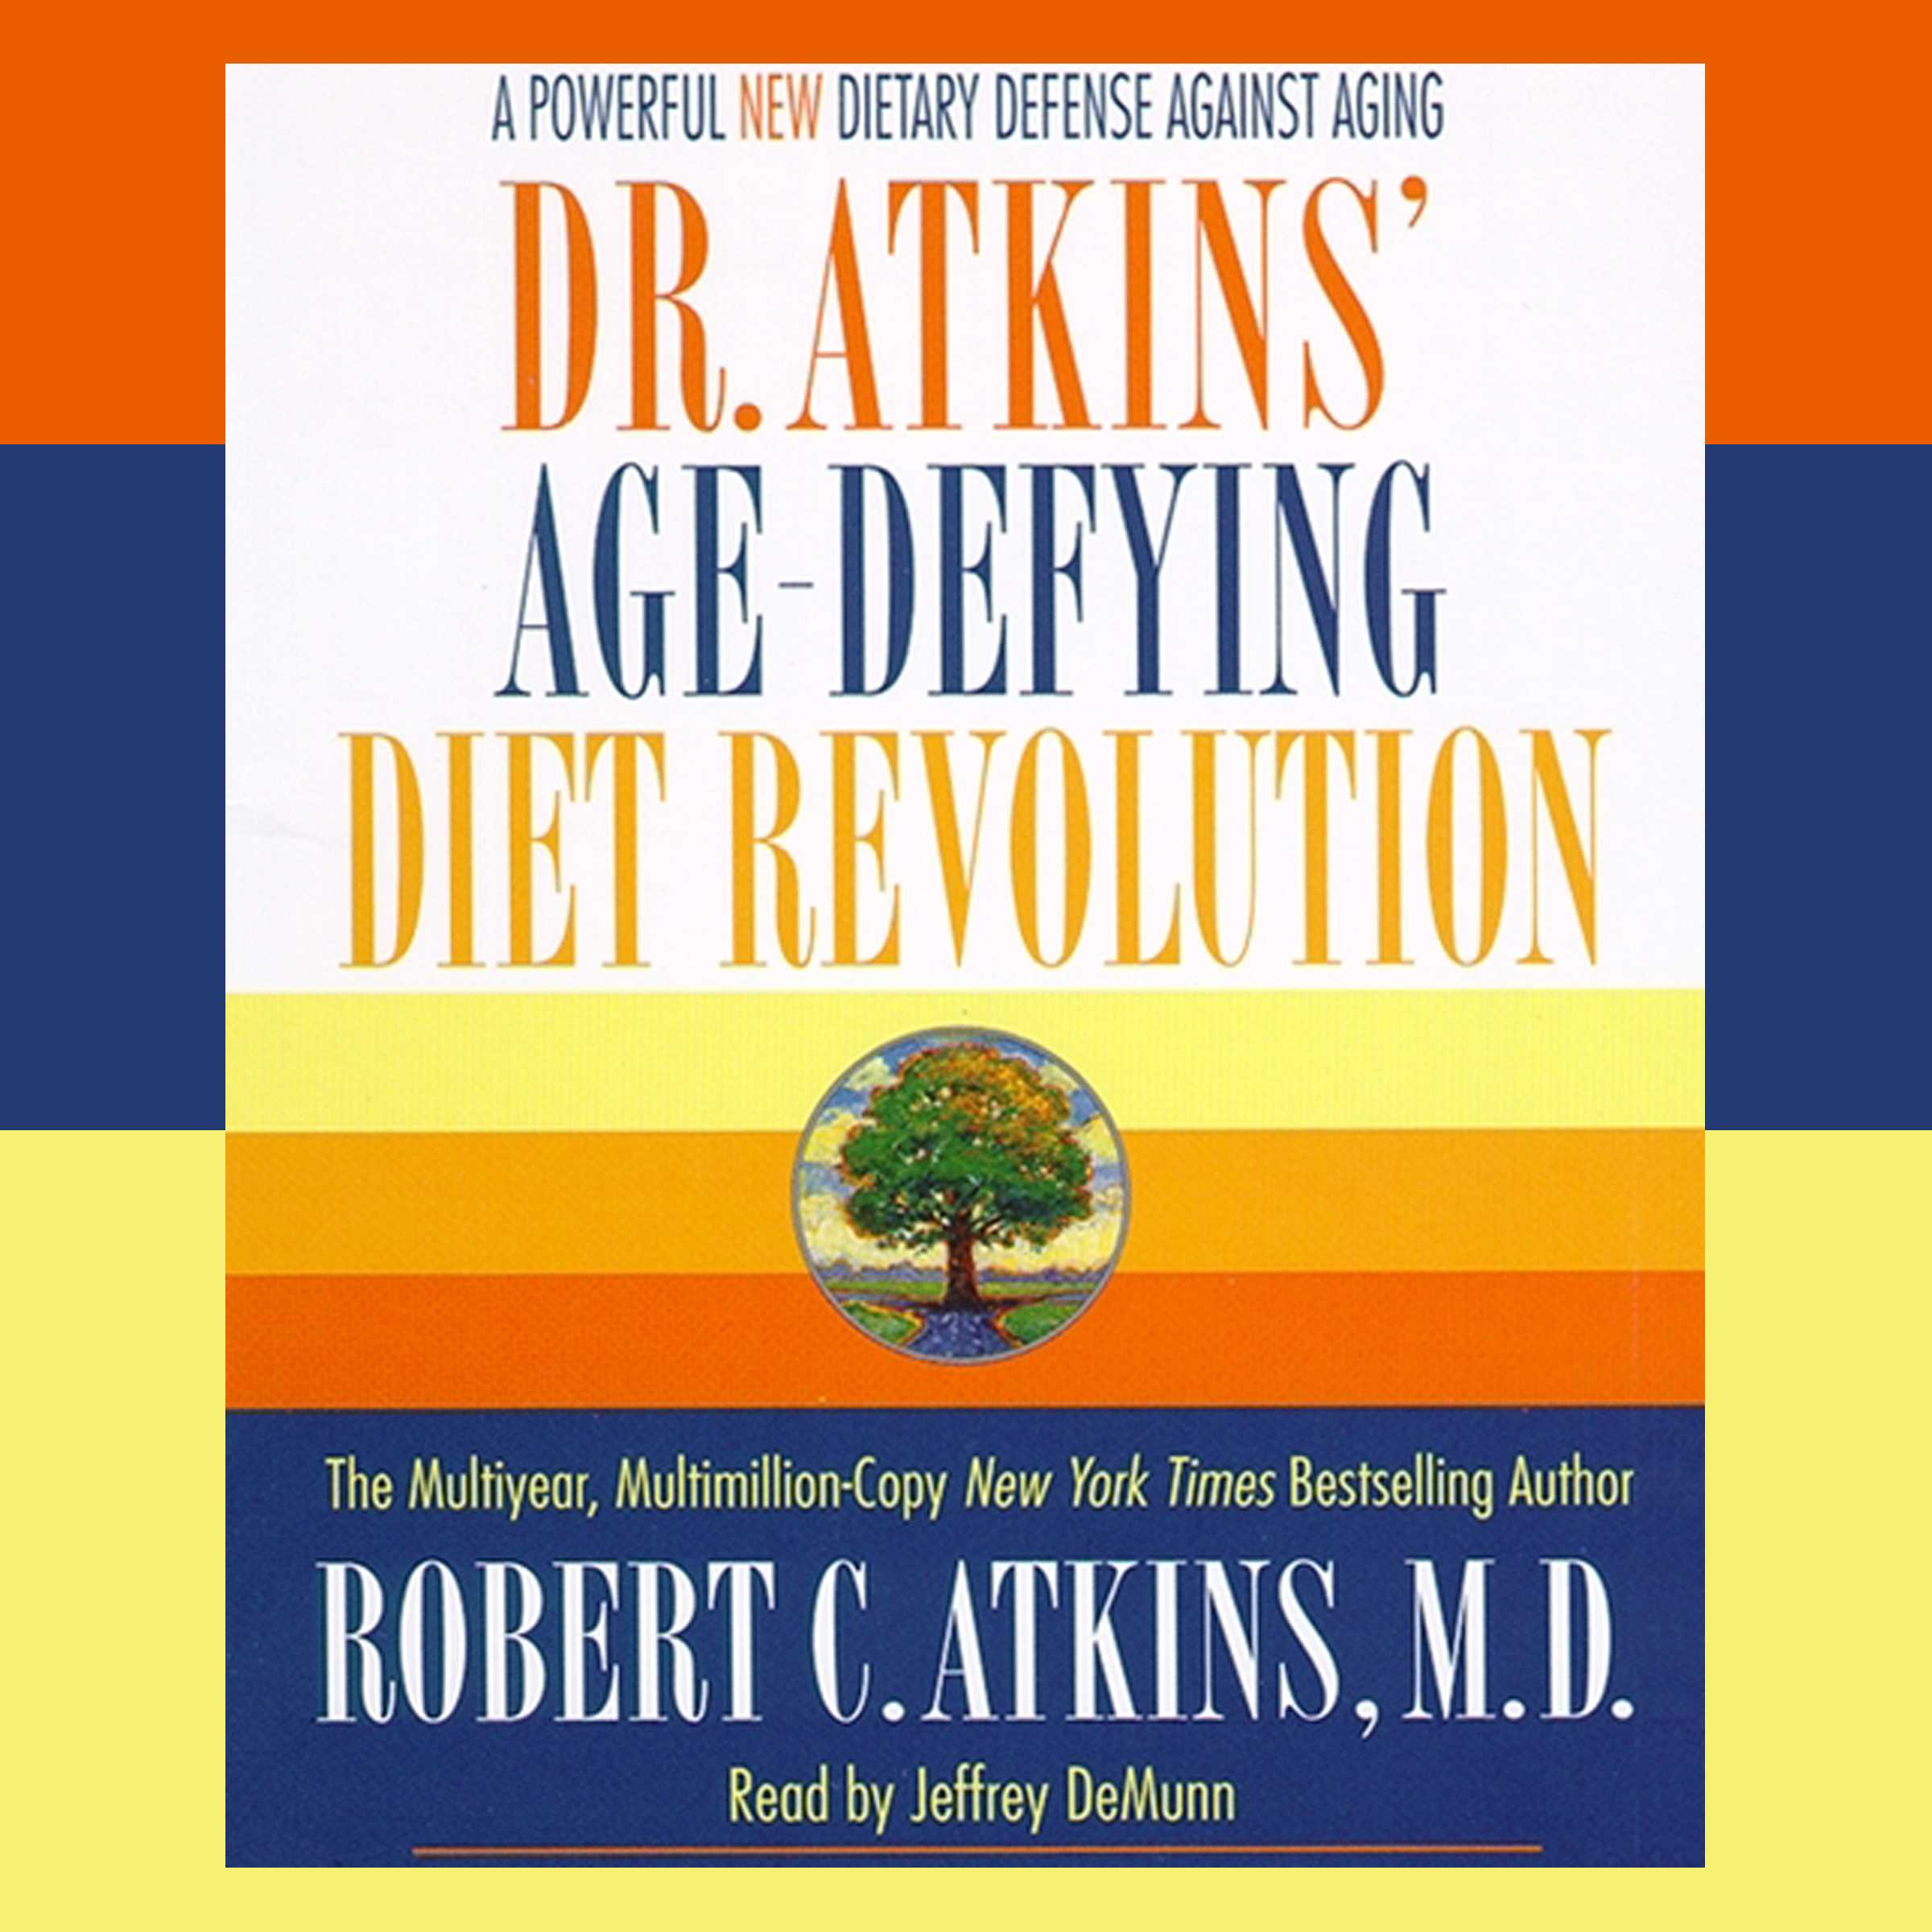 Dr-atkins-age-defying-diet-revolution-9780743518789_hr